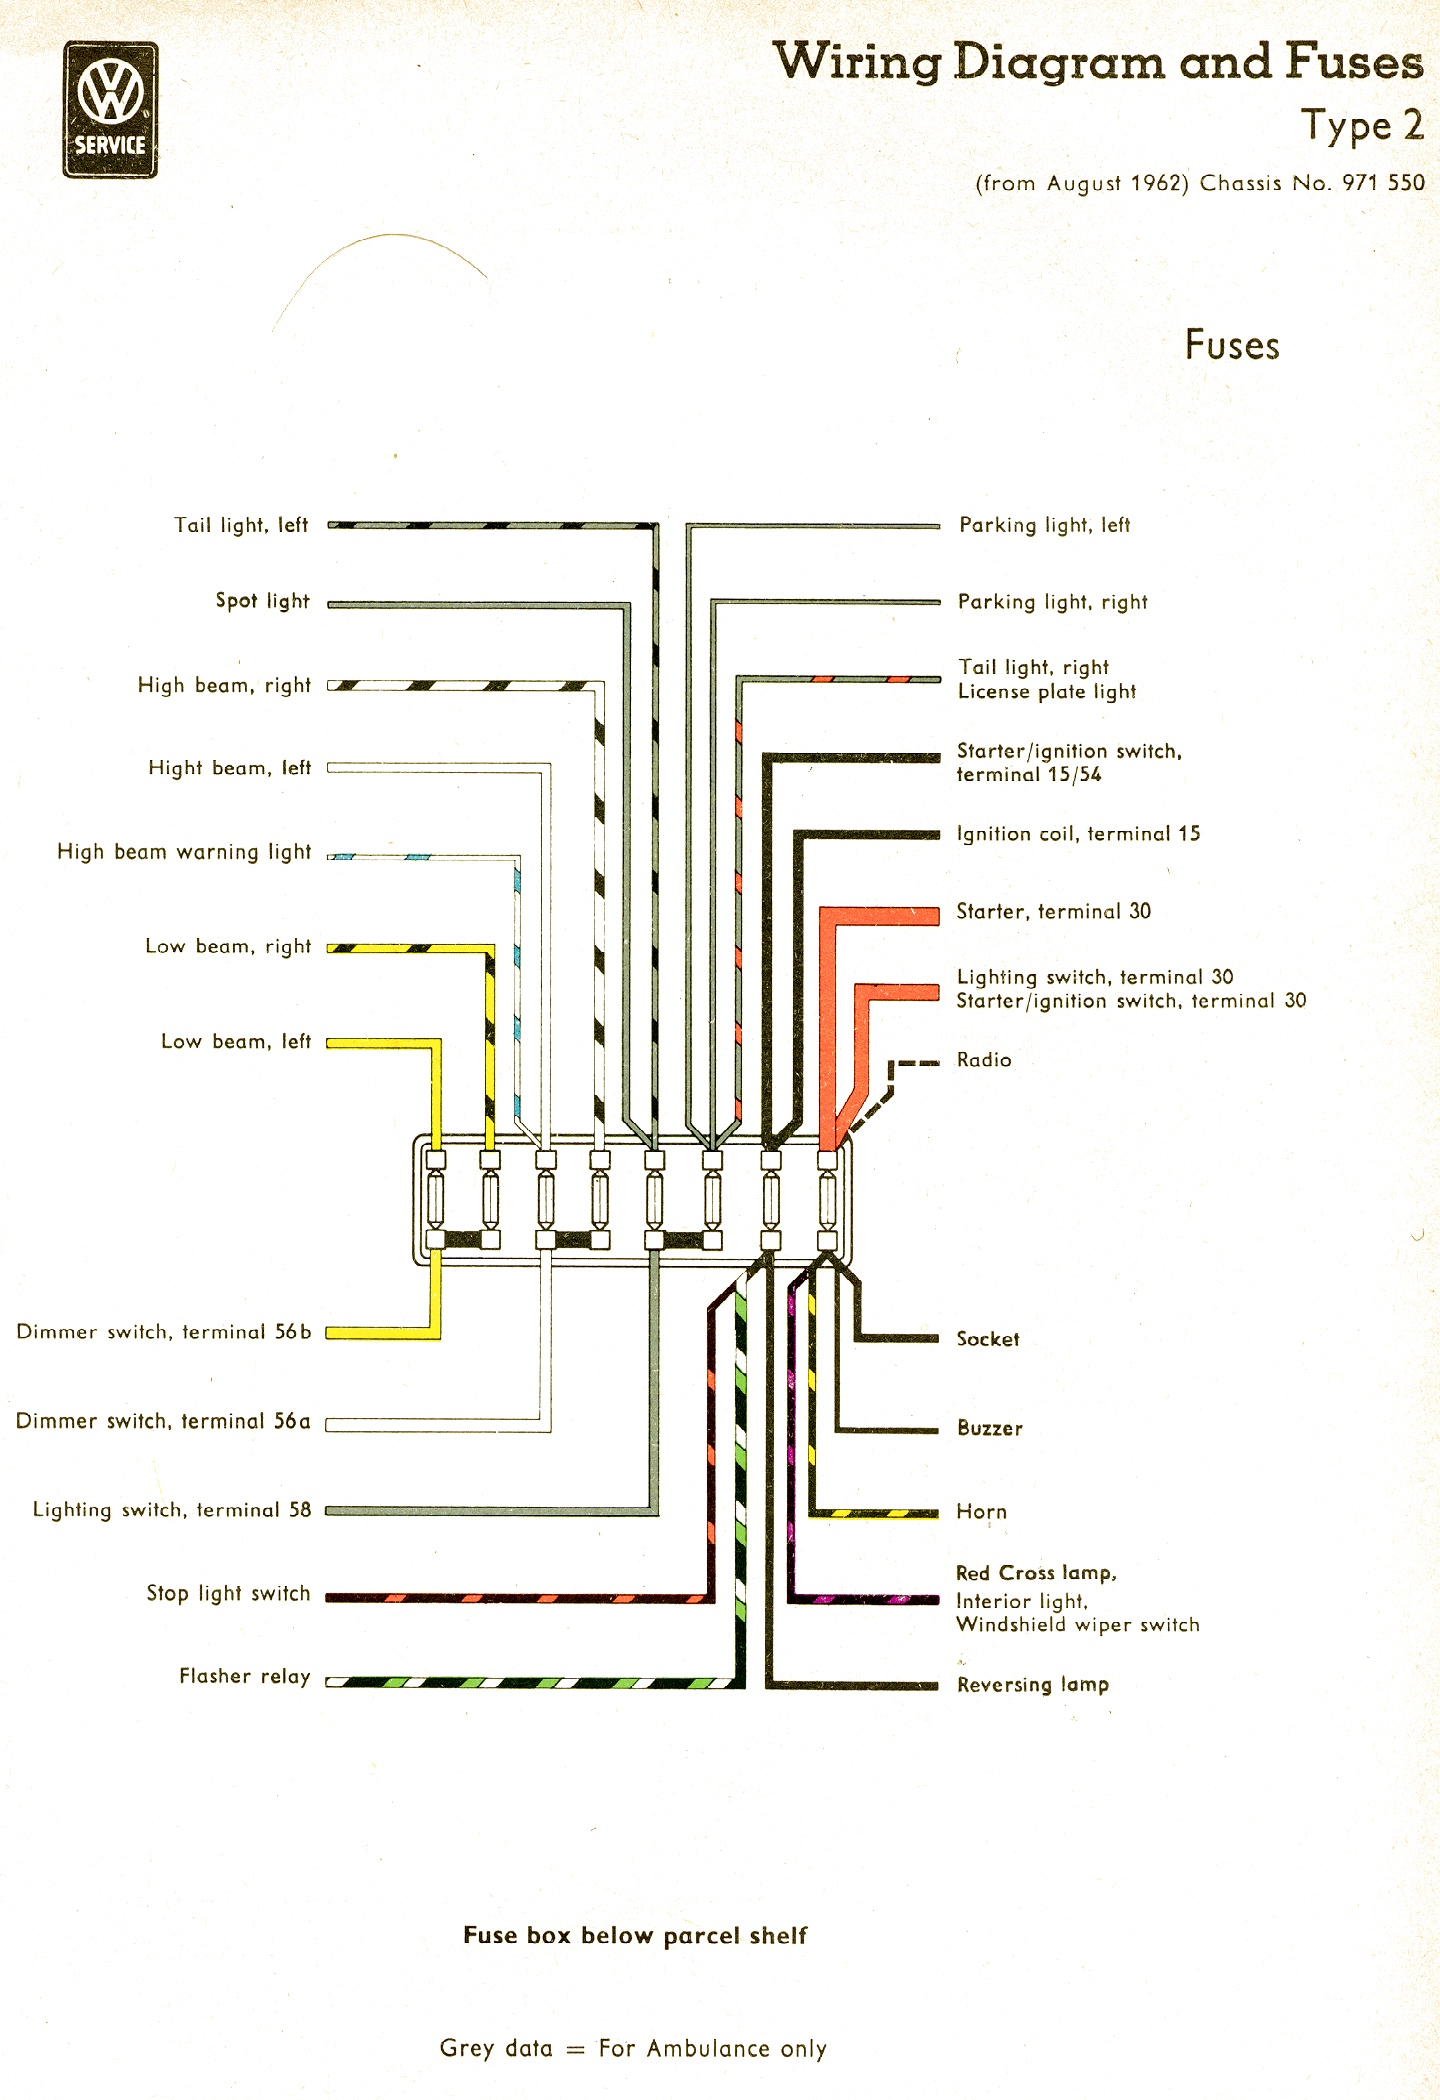 1970 Vw Fuse Diagram | Wiring Liry  Mustang Starter Wiring Diagram on 71 mustang starter circuit, 71 mustang ford, 71 mustang fuel pump, 71 mustang relay, 71 mustang clock, 71 mustang welding diagram, 71 mustang door, 71 mustang wheels, 71 mustang radiator diagram, 71 mustang engine, 73 mustang starting circuit diagram,